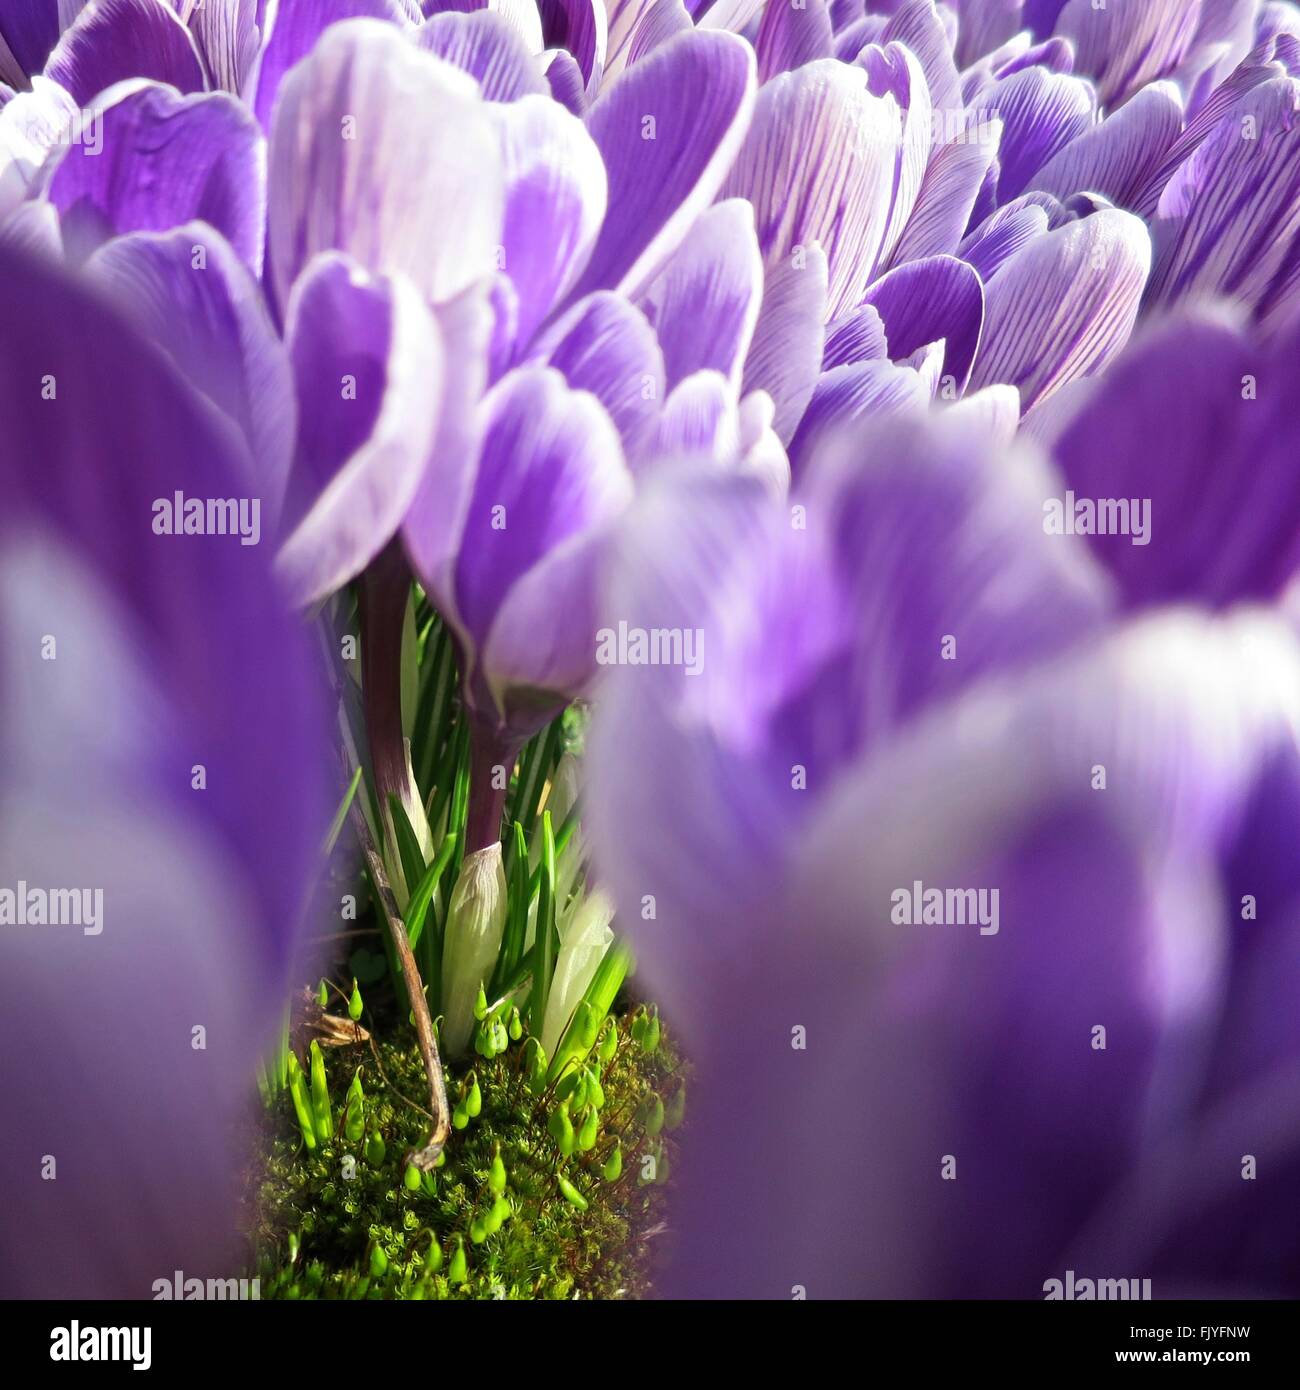 Purple crocuses close up showing the undergrowth of green stems Stock Photo